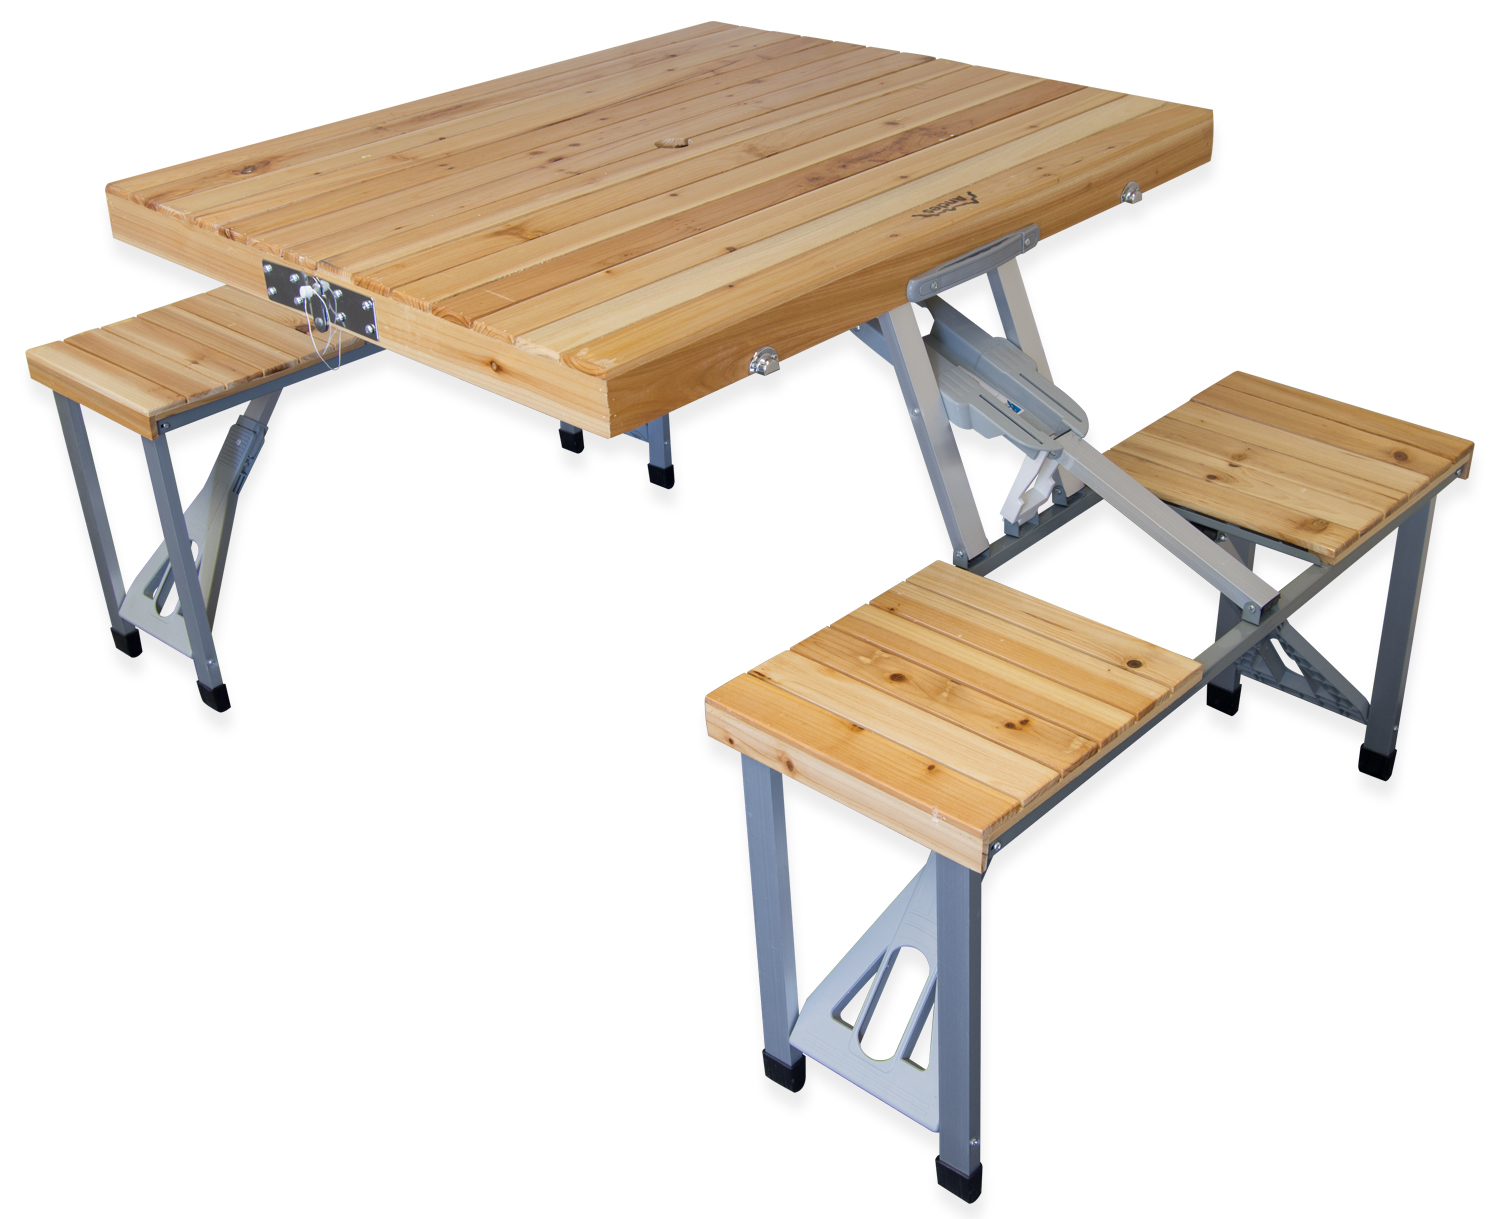 Wooden Outdoor Tables